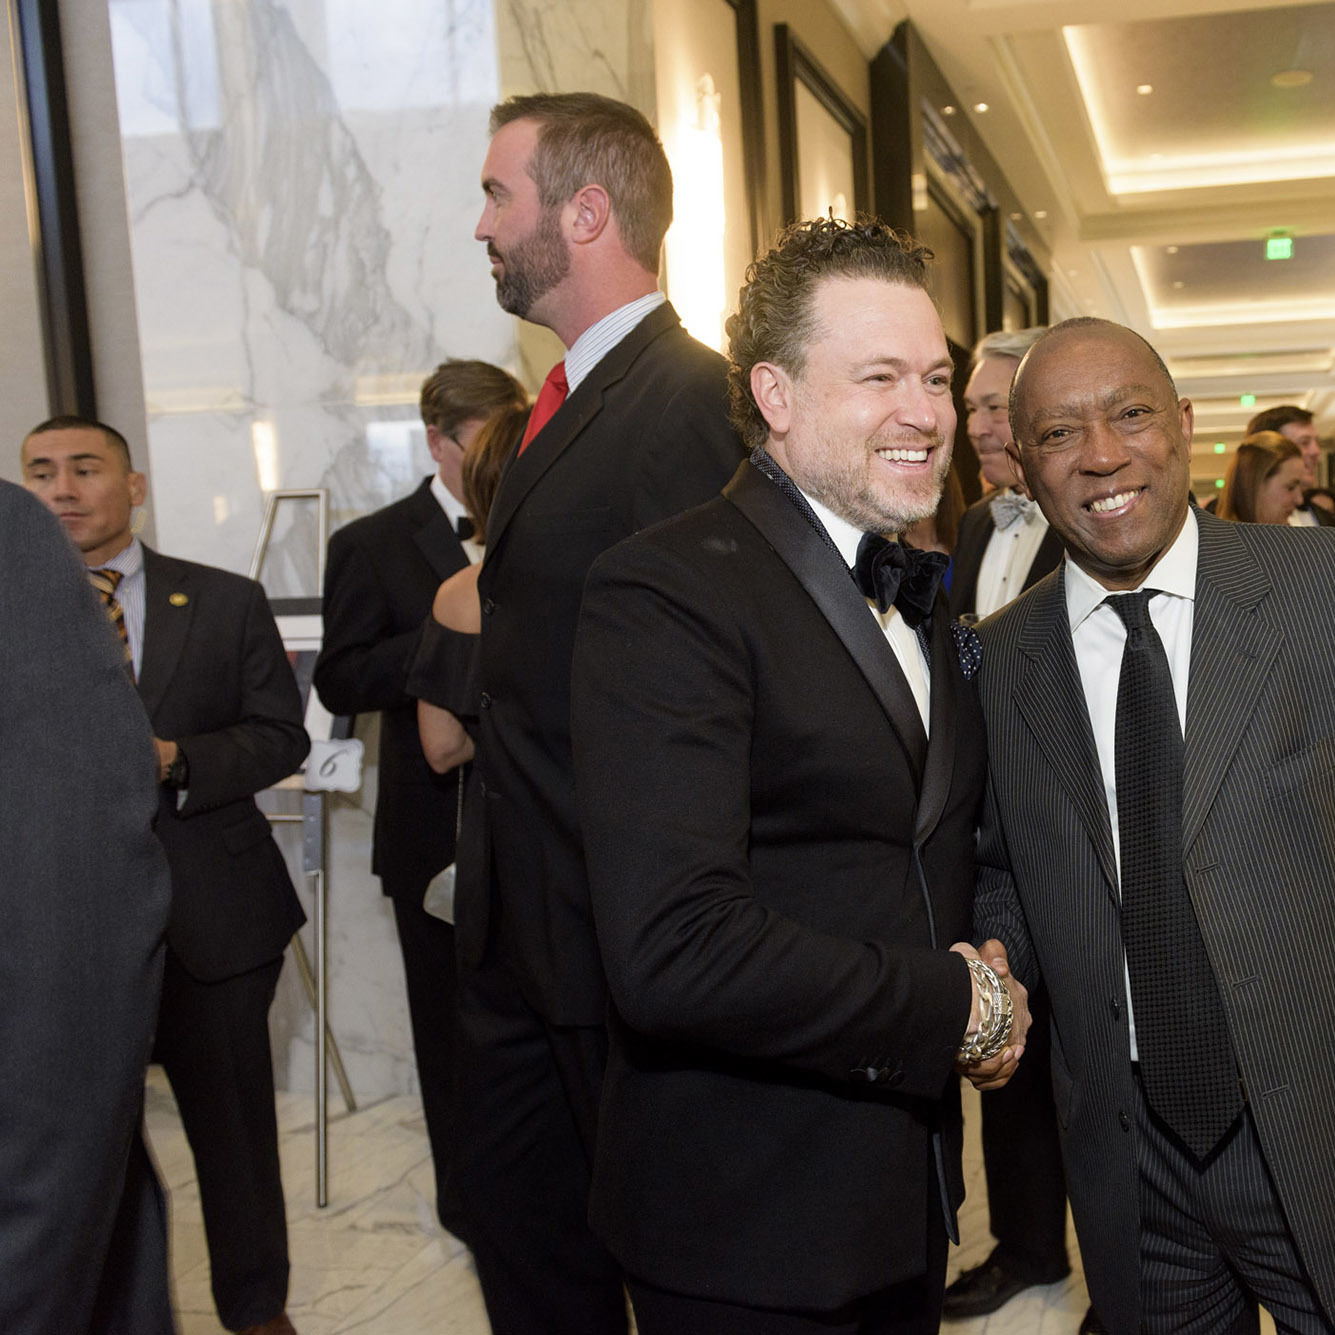 Gregg harrison and mayor sylvester turner  photo credit killy xocrcu